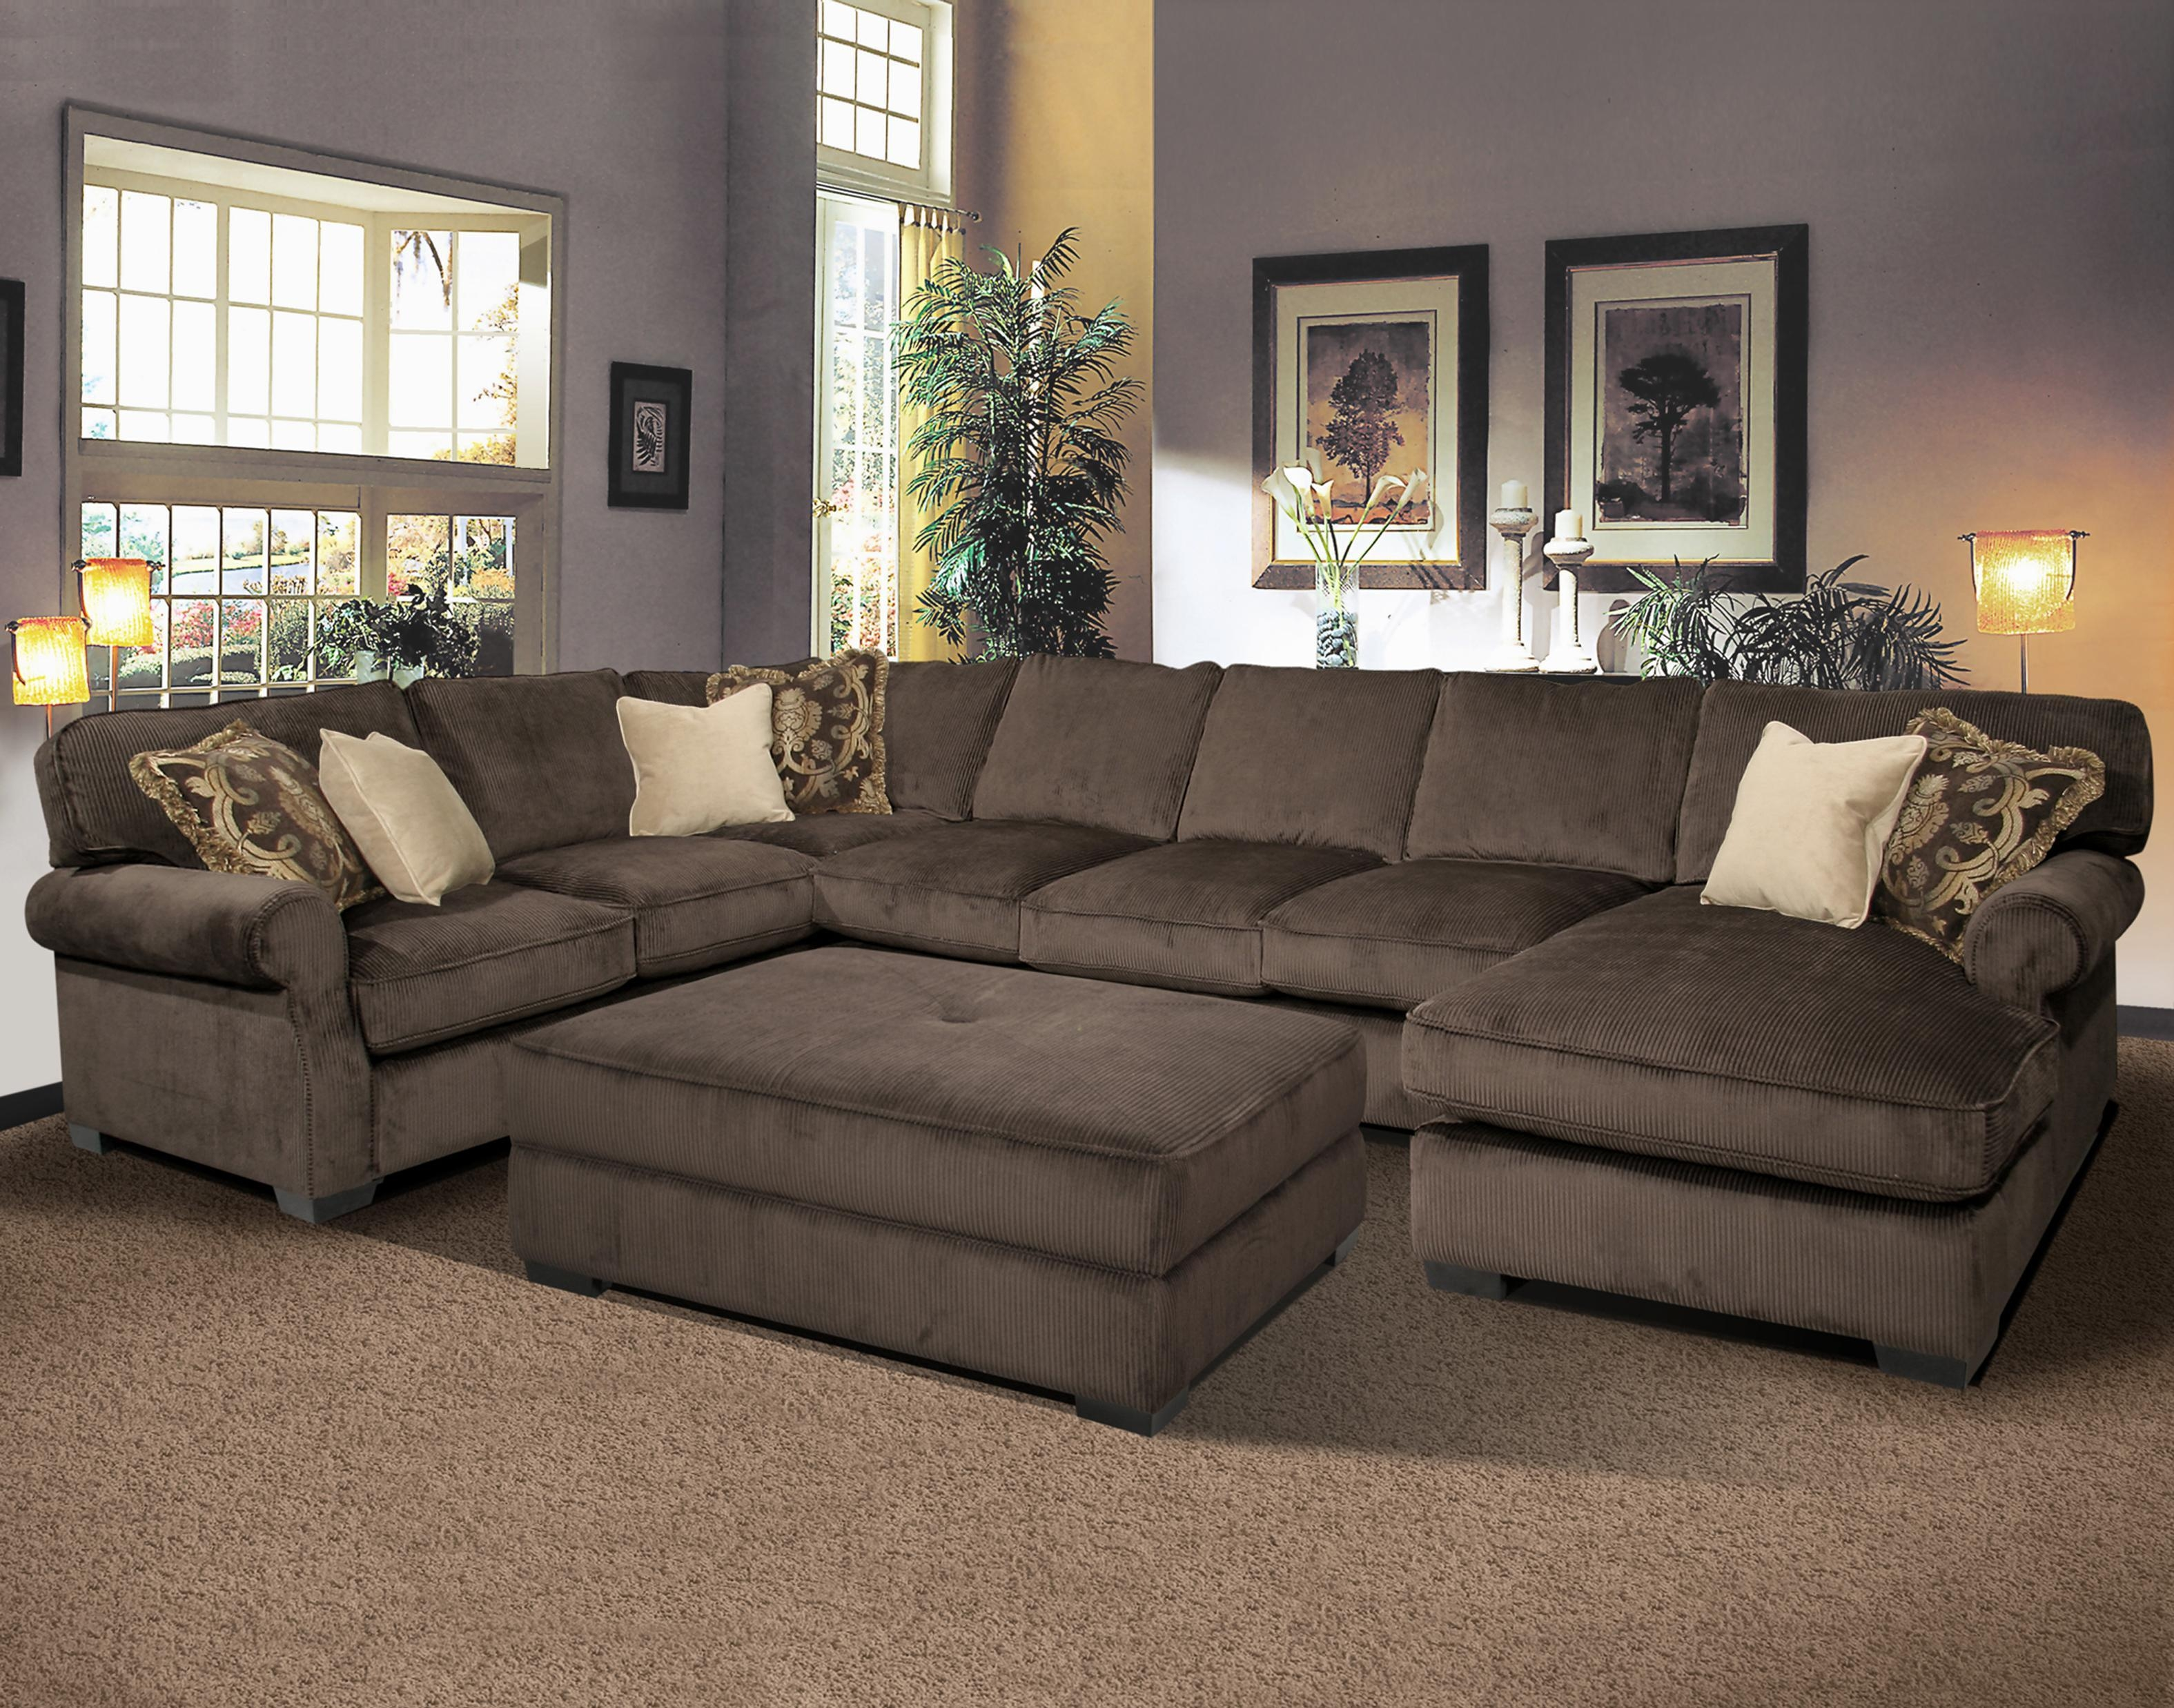 Furniture: Huge Sectional Sofa | Extra Large Sectional Sofa Pertaining To Sofas And Sectionals (View 6 of 20)